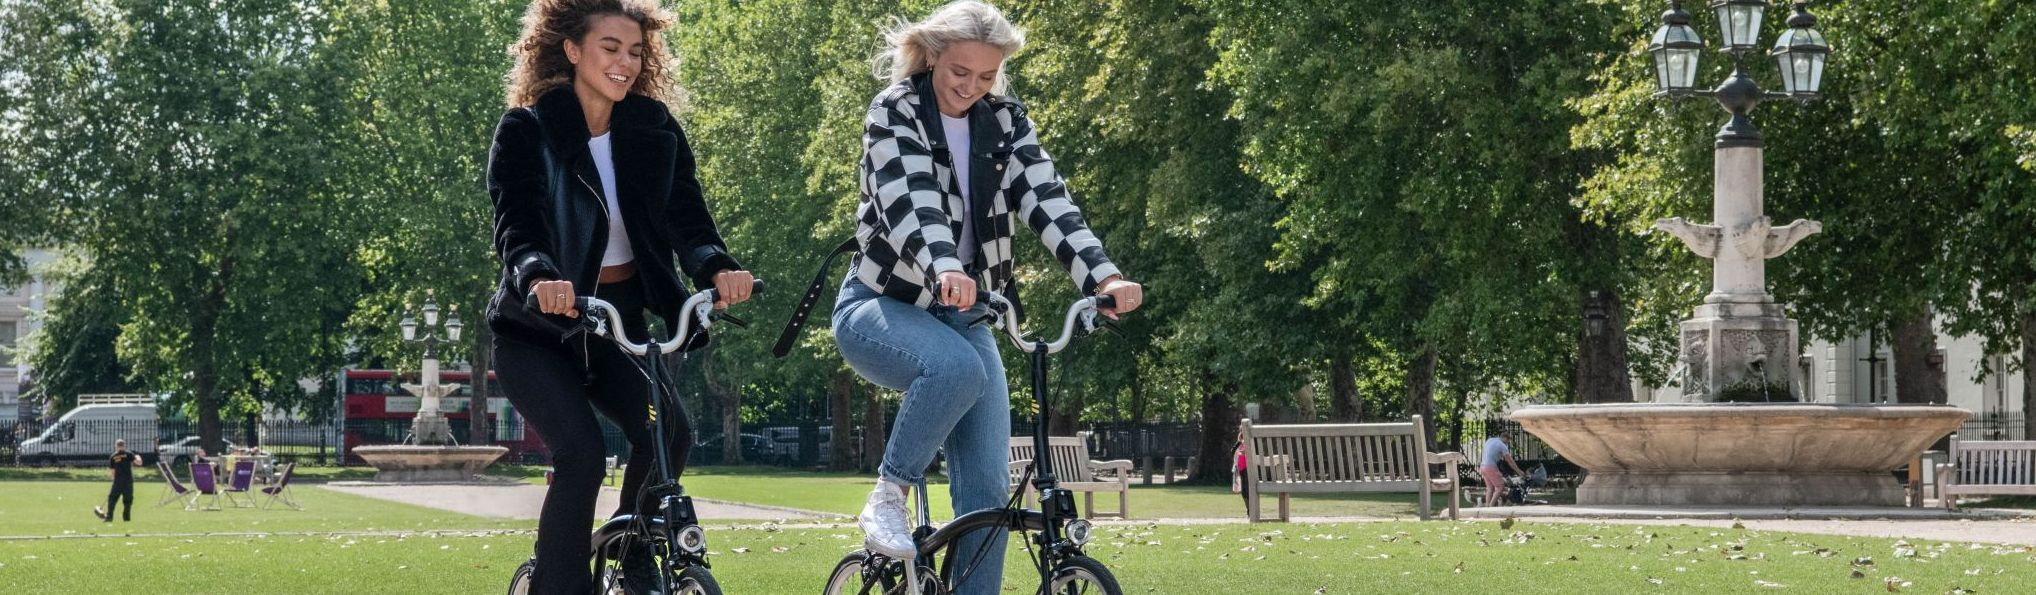 Brompton Bike Hire Comes To Regent's Place